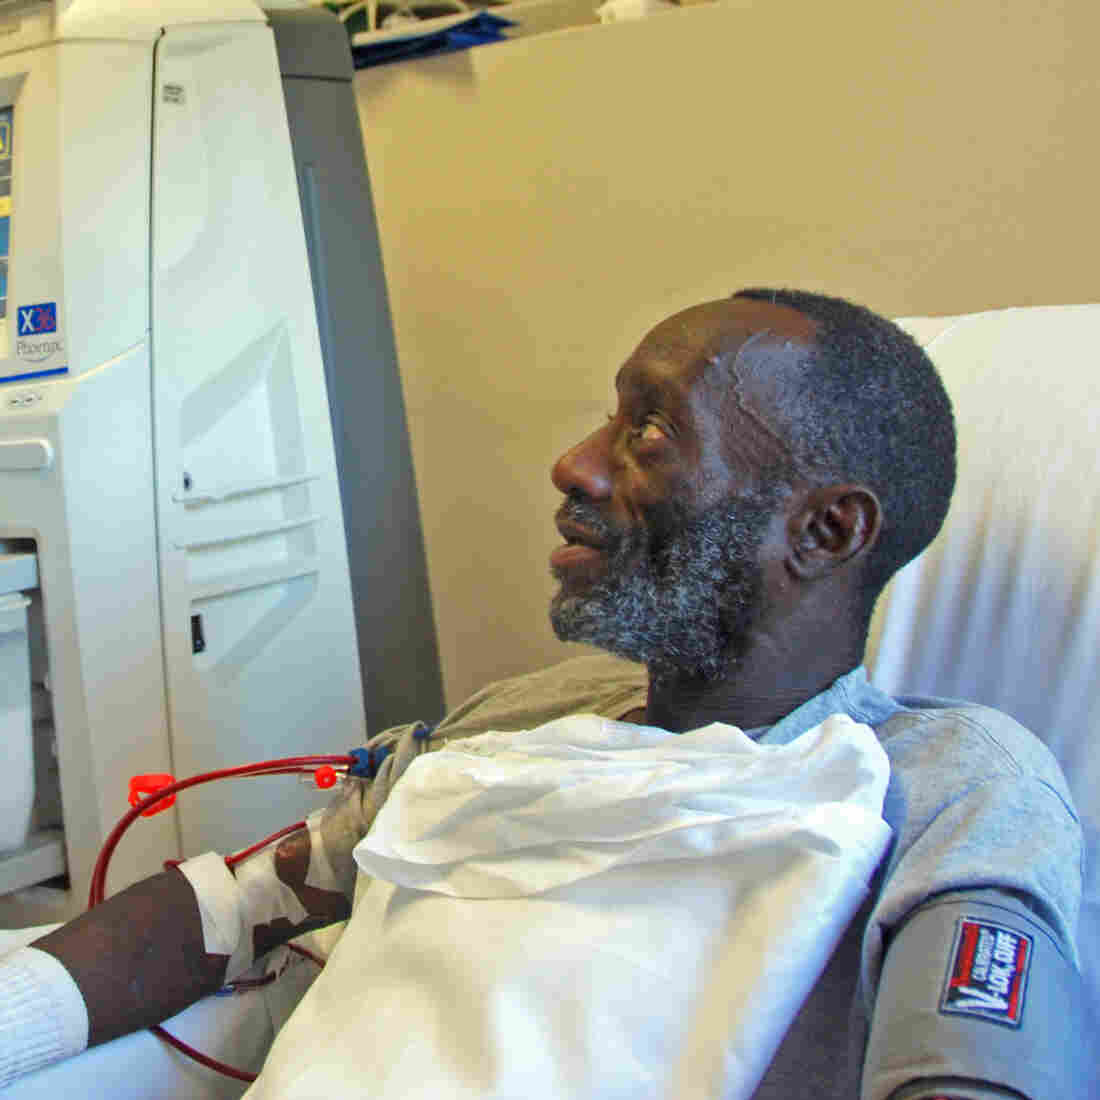 While Kenya Jackson (right) is on his thrice-weekly dialysis treatment, community health worker Greg Jules talks to him about taking his medication.